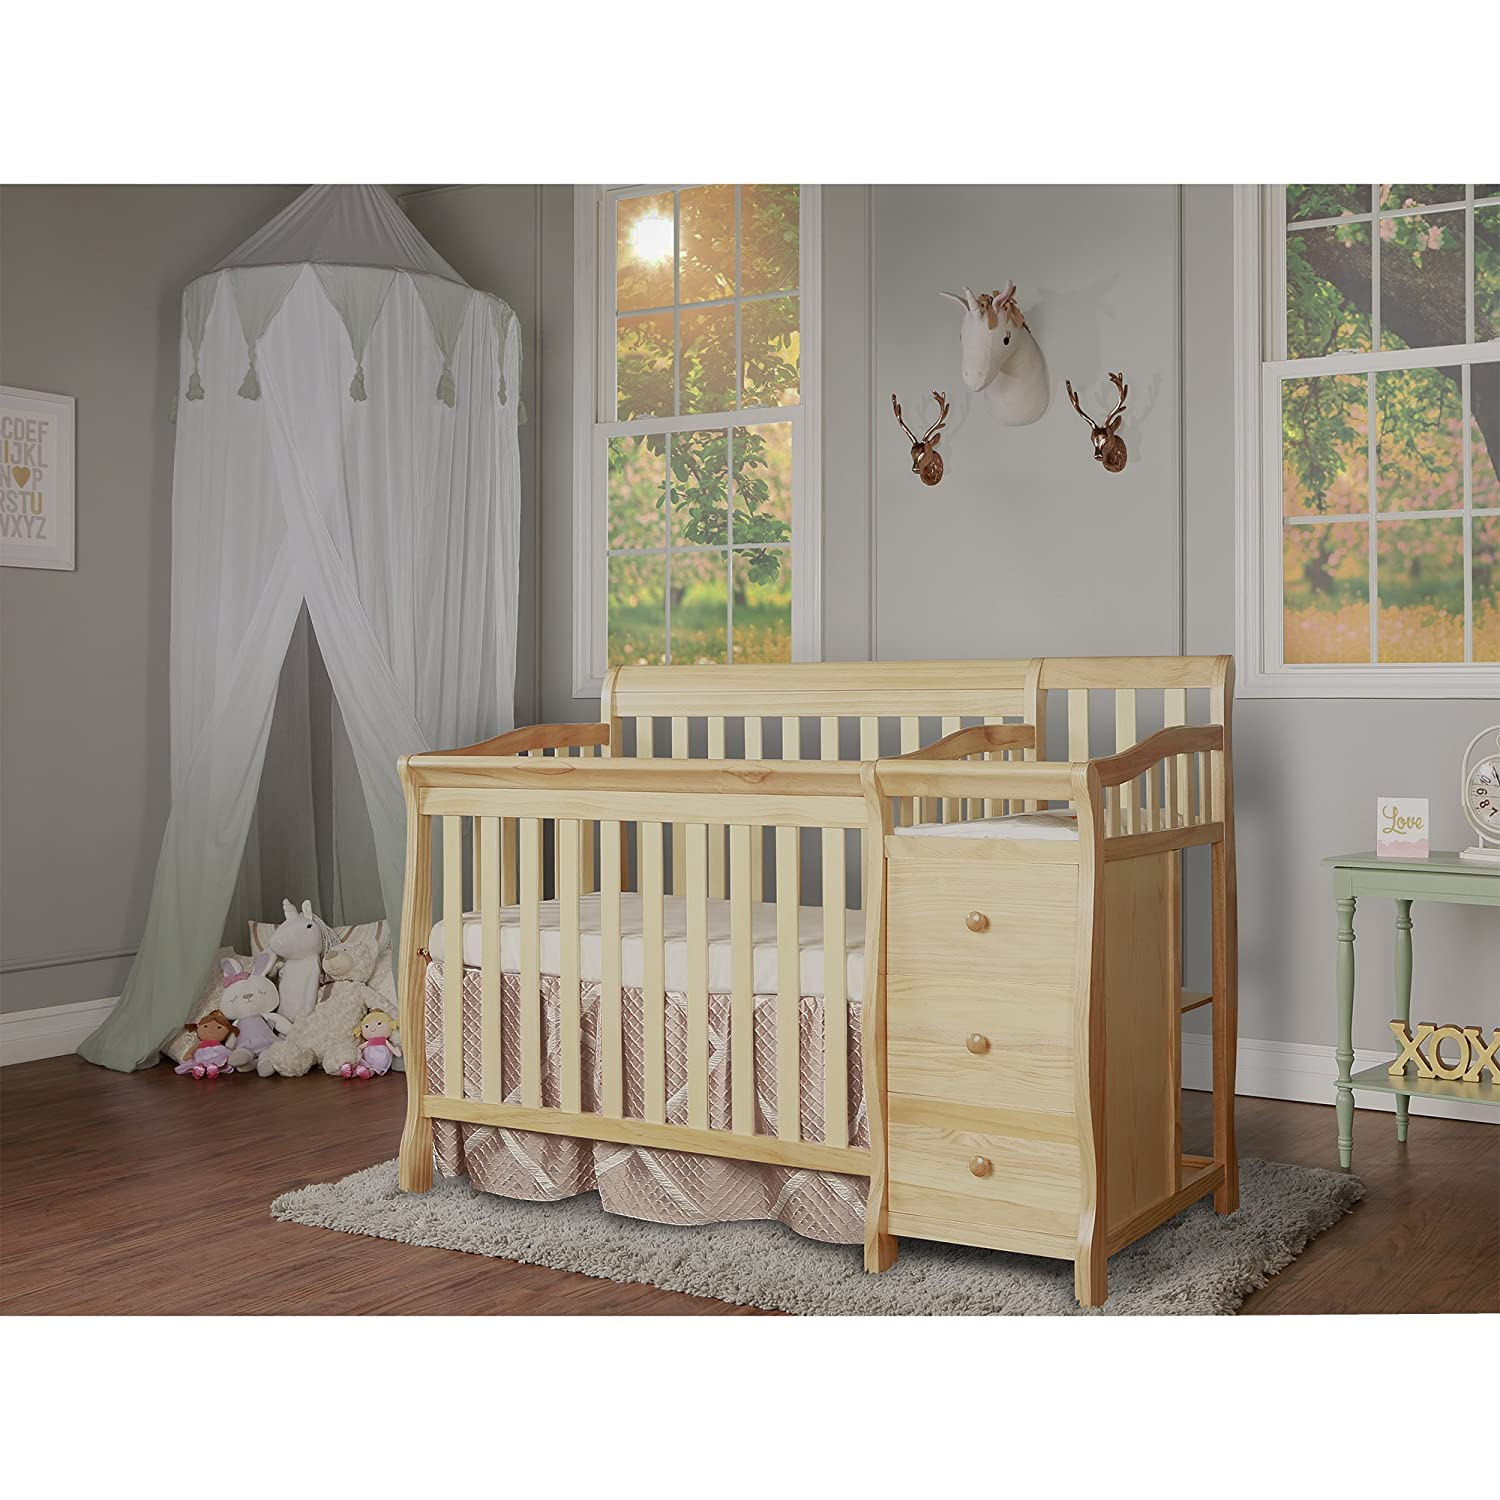 larger everlasting nursery dresser cribs contemporary furniture view get our of mattress the take rustic minutes chic bundle wooden started full to deals changing black size with sets trendy cots set bay baby oak traditional and crib table matching